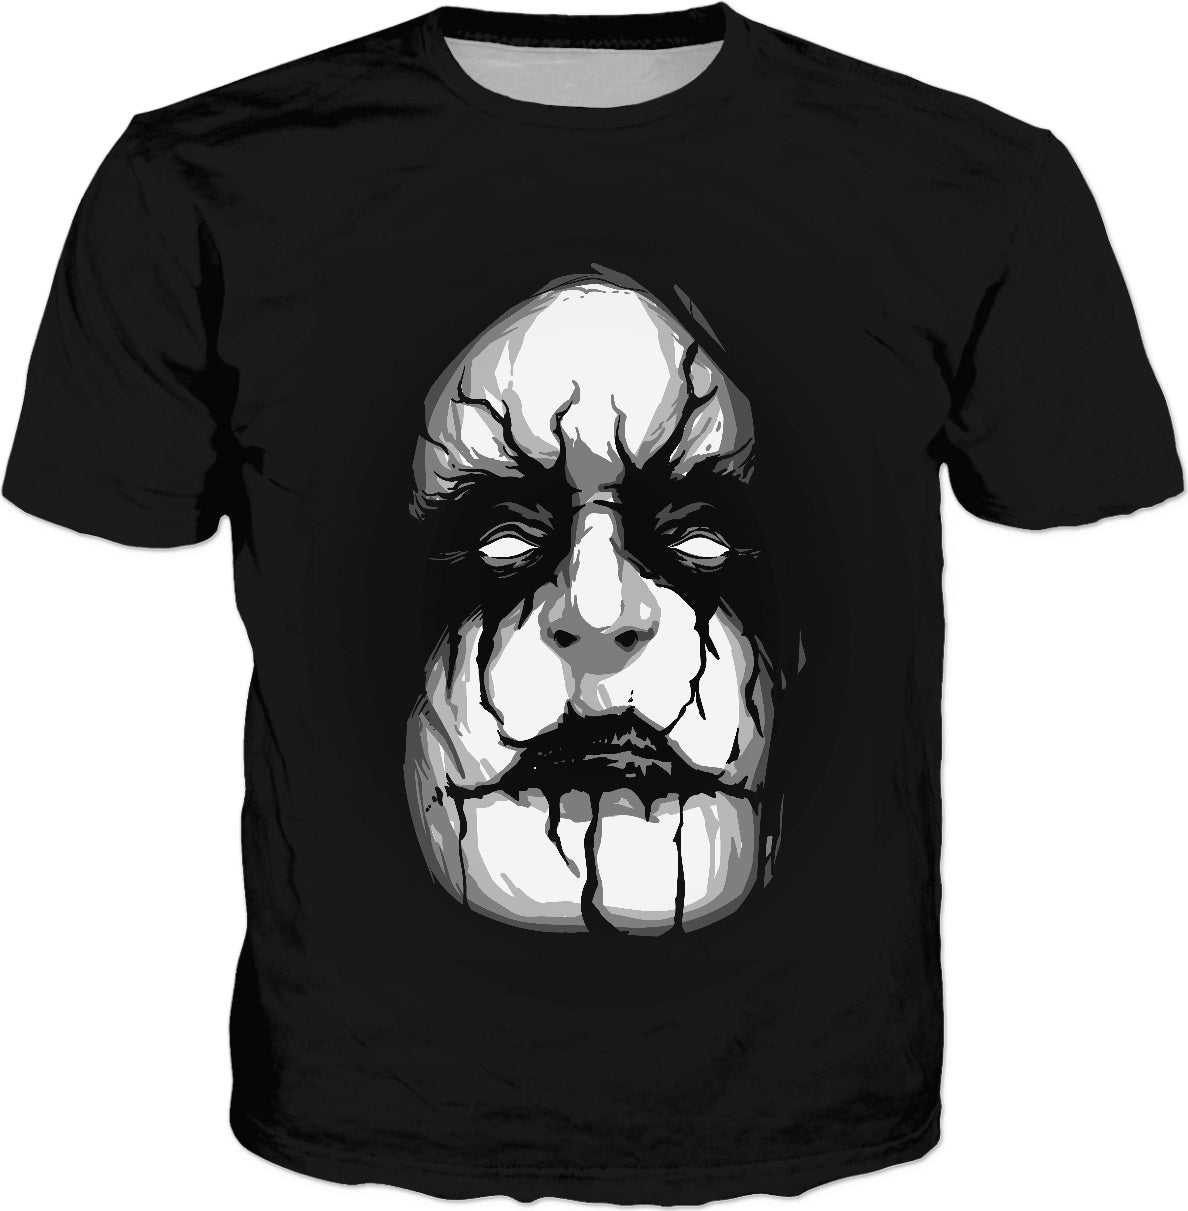 Black Metal Adult T-Shirt